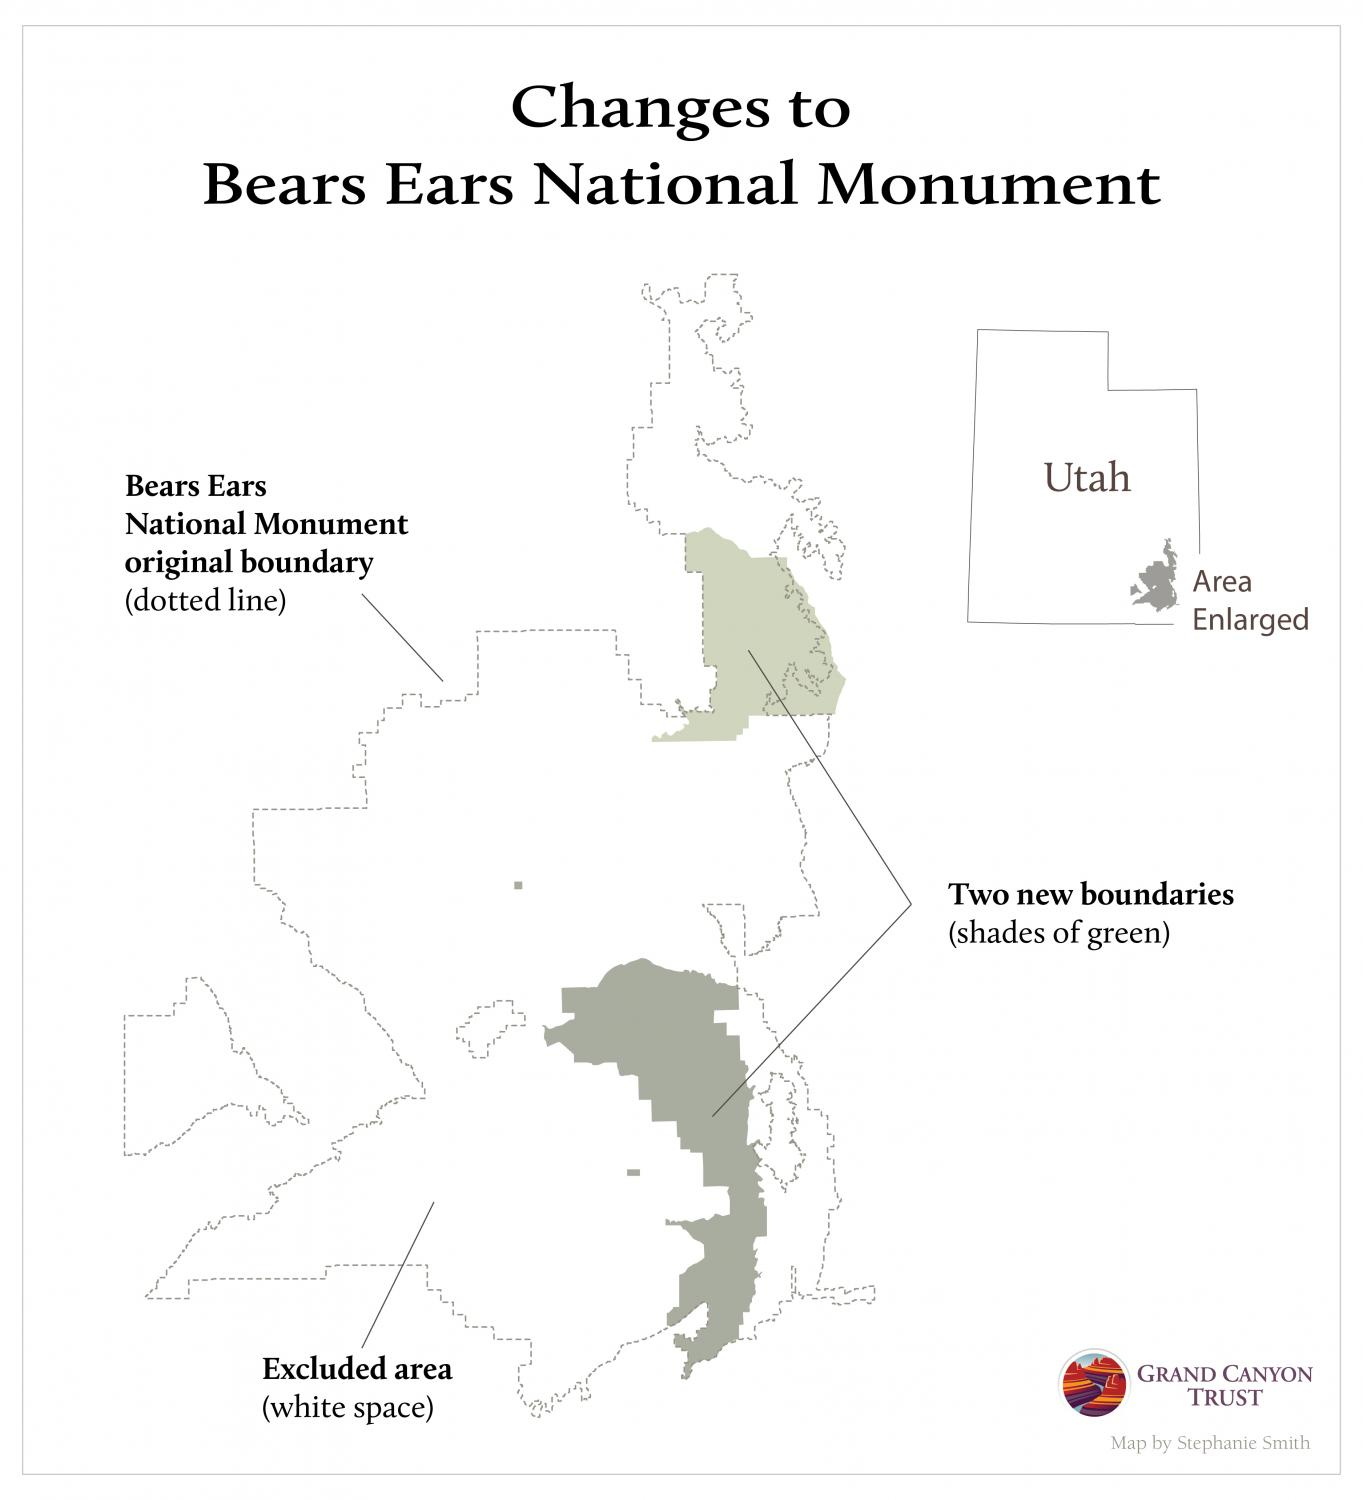 Map showing the excluded areas in Bears Ears National Monument.